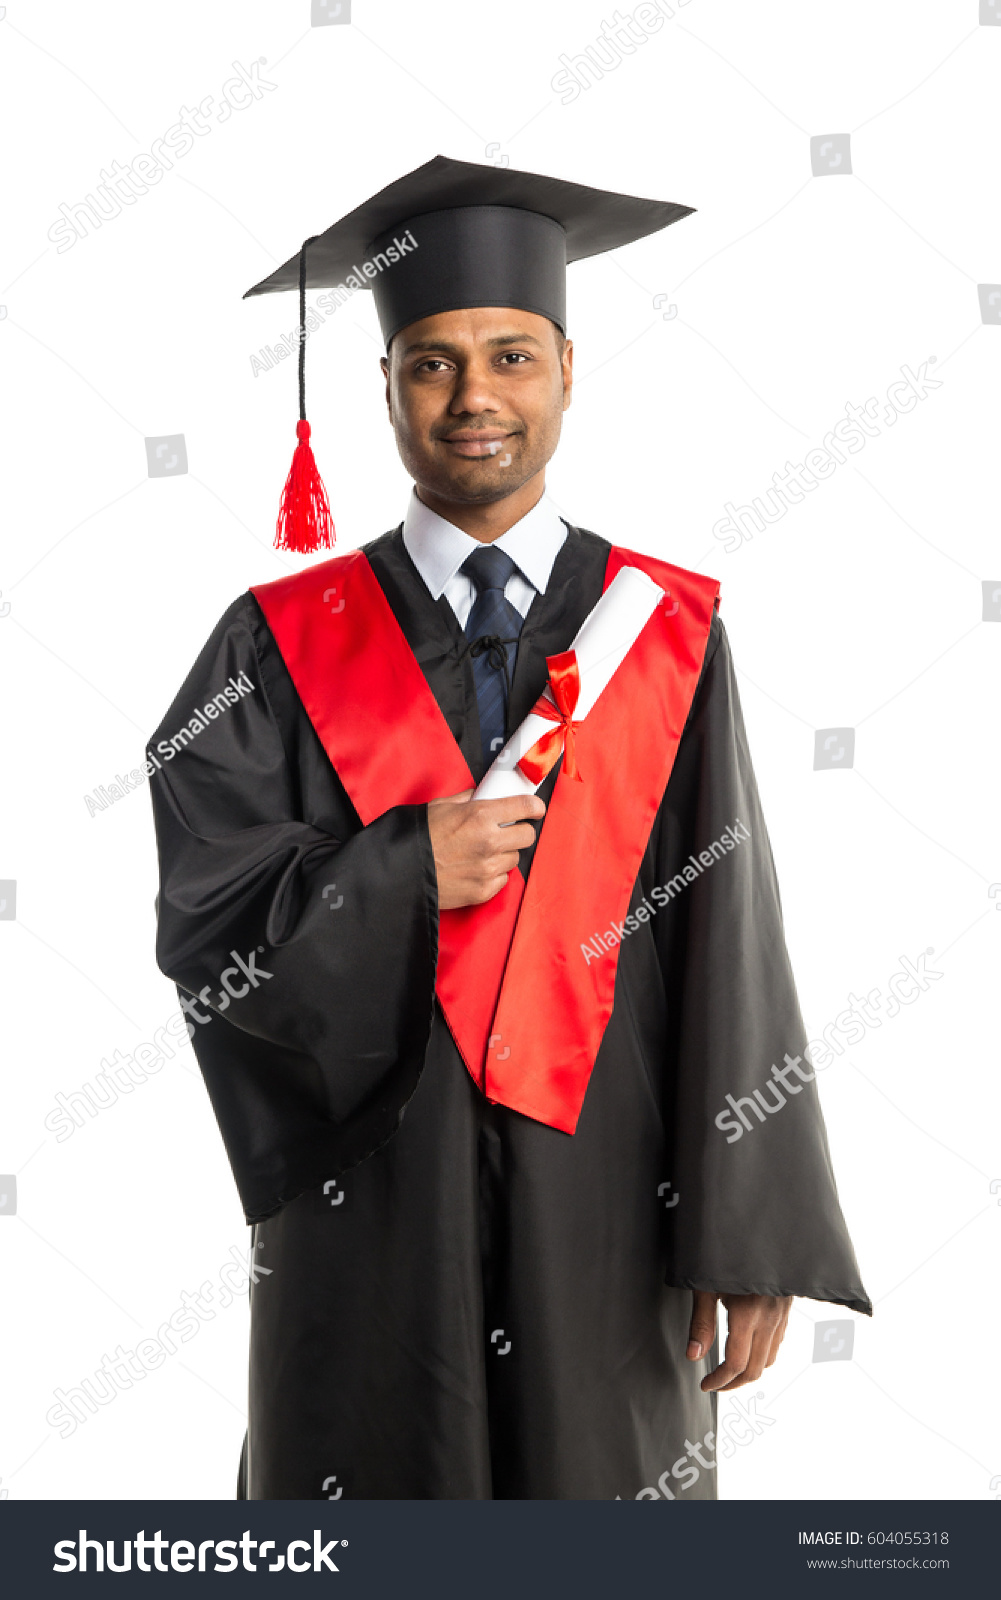 Male African American Graduate Gown Cap Stock Photo (Royalty Free ...